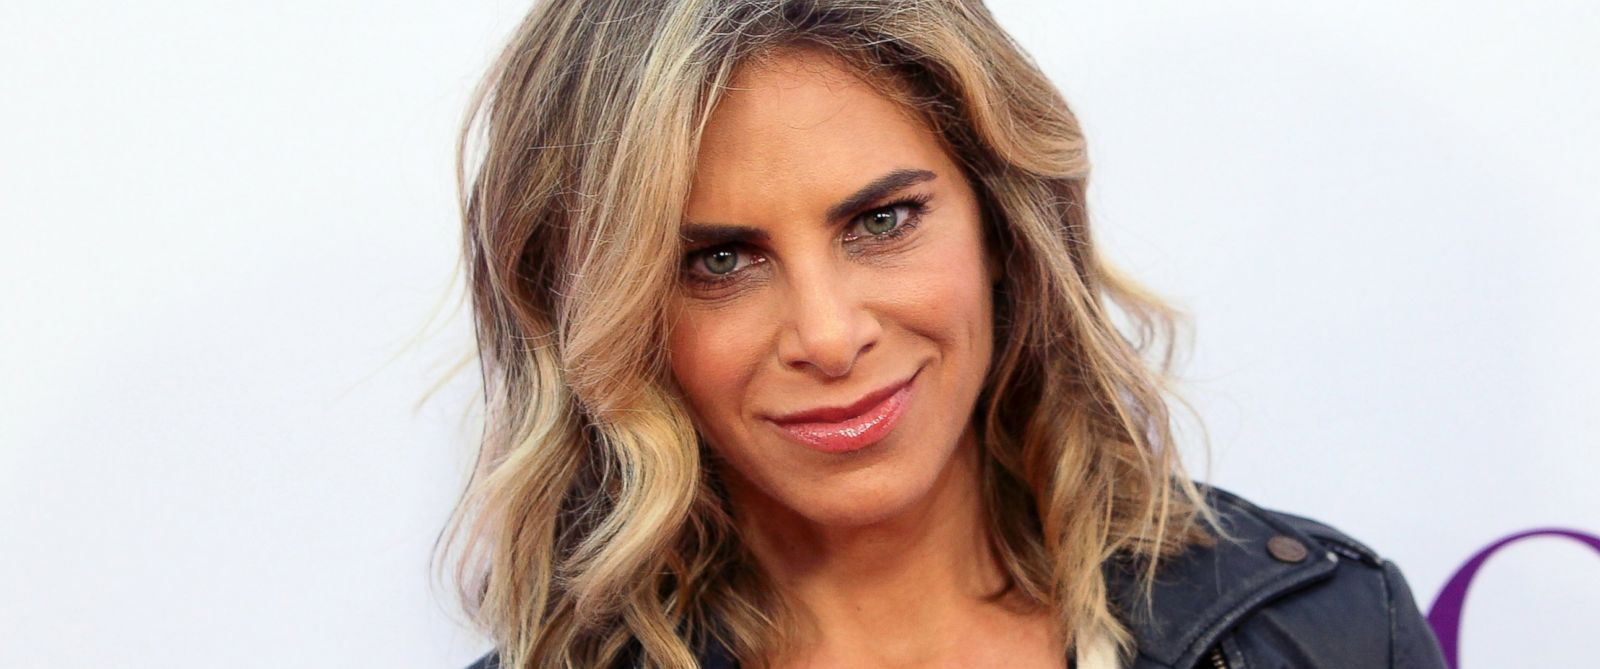 jillian michaels details fall wedding plans reveals shes